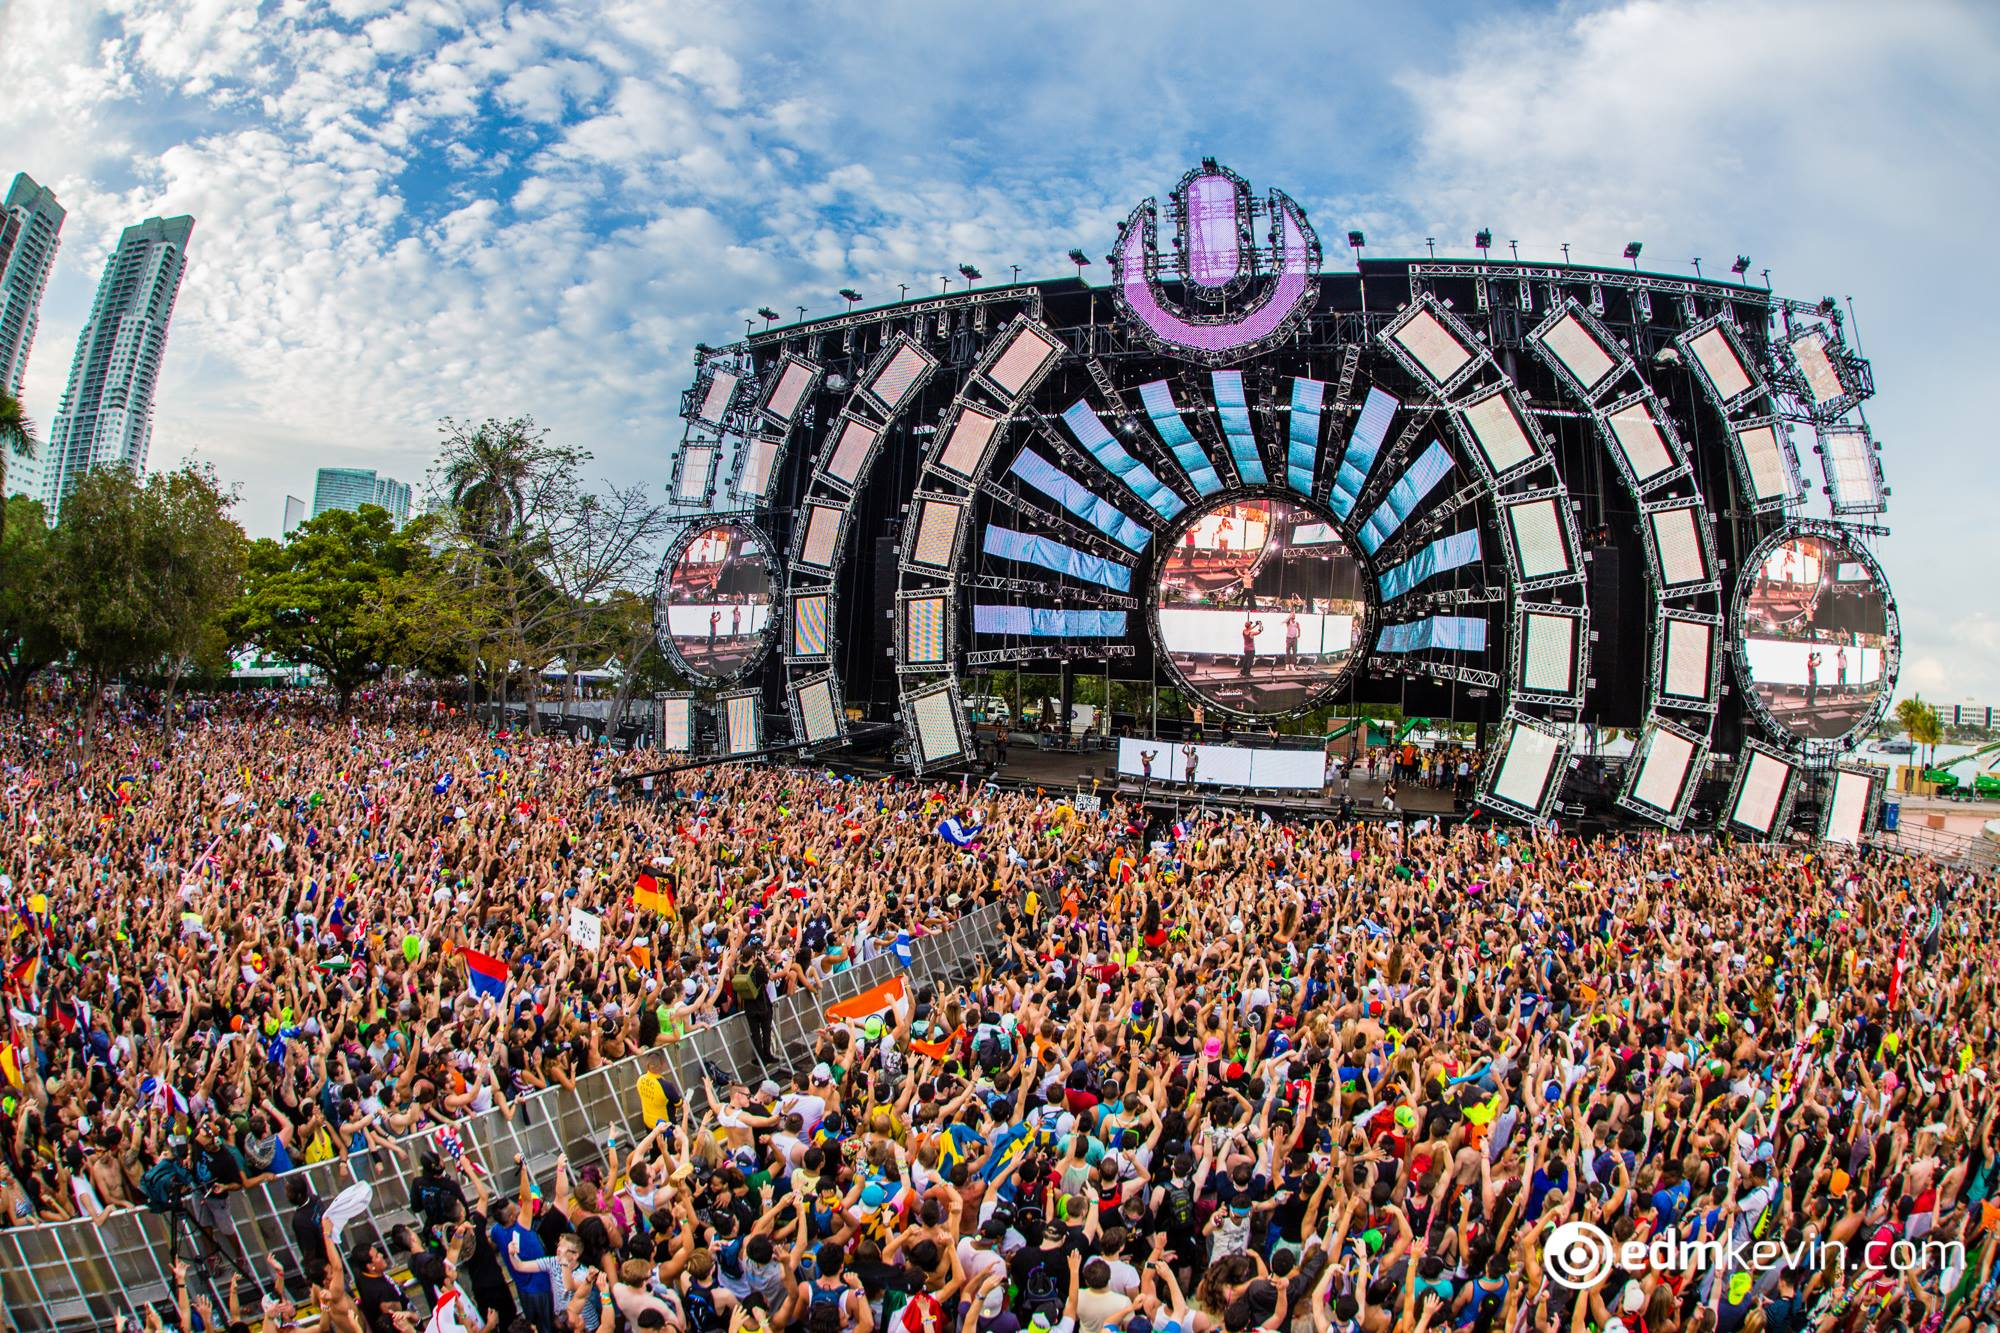 Newly Released Video Spotlights Ultra's Worst